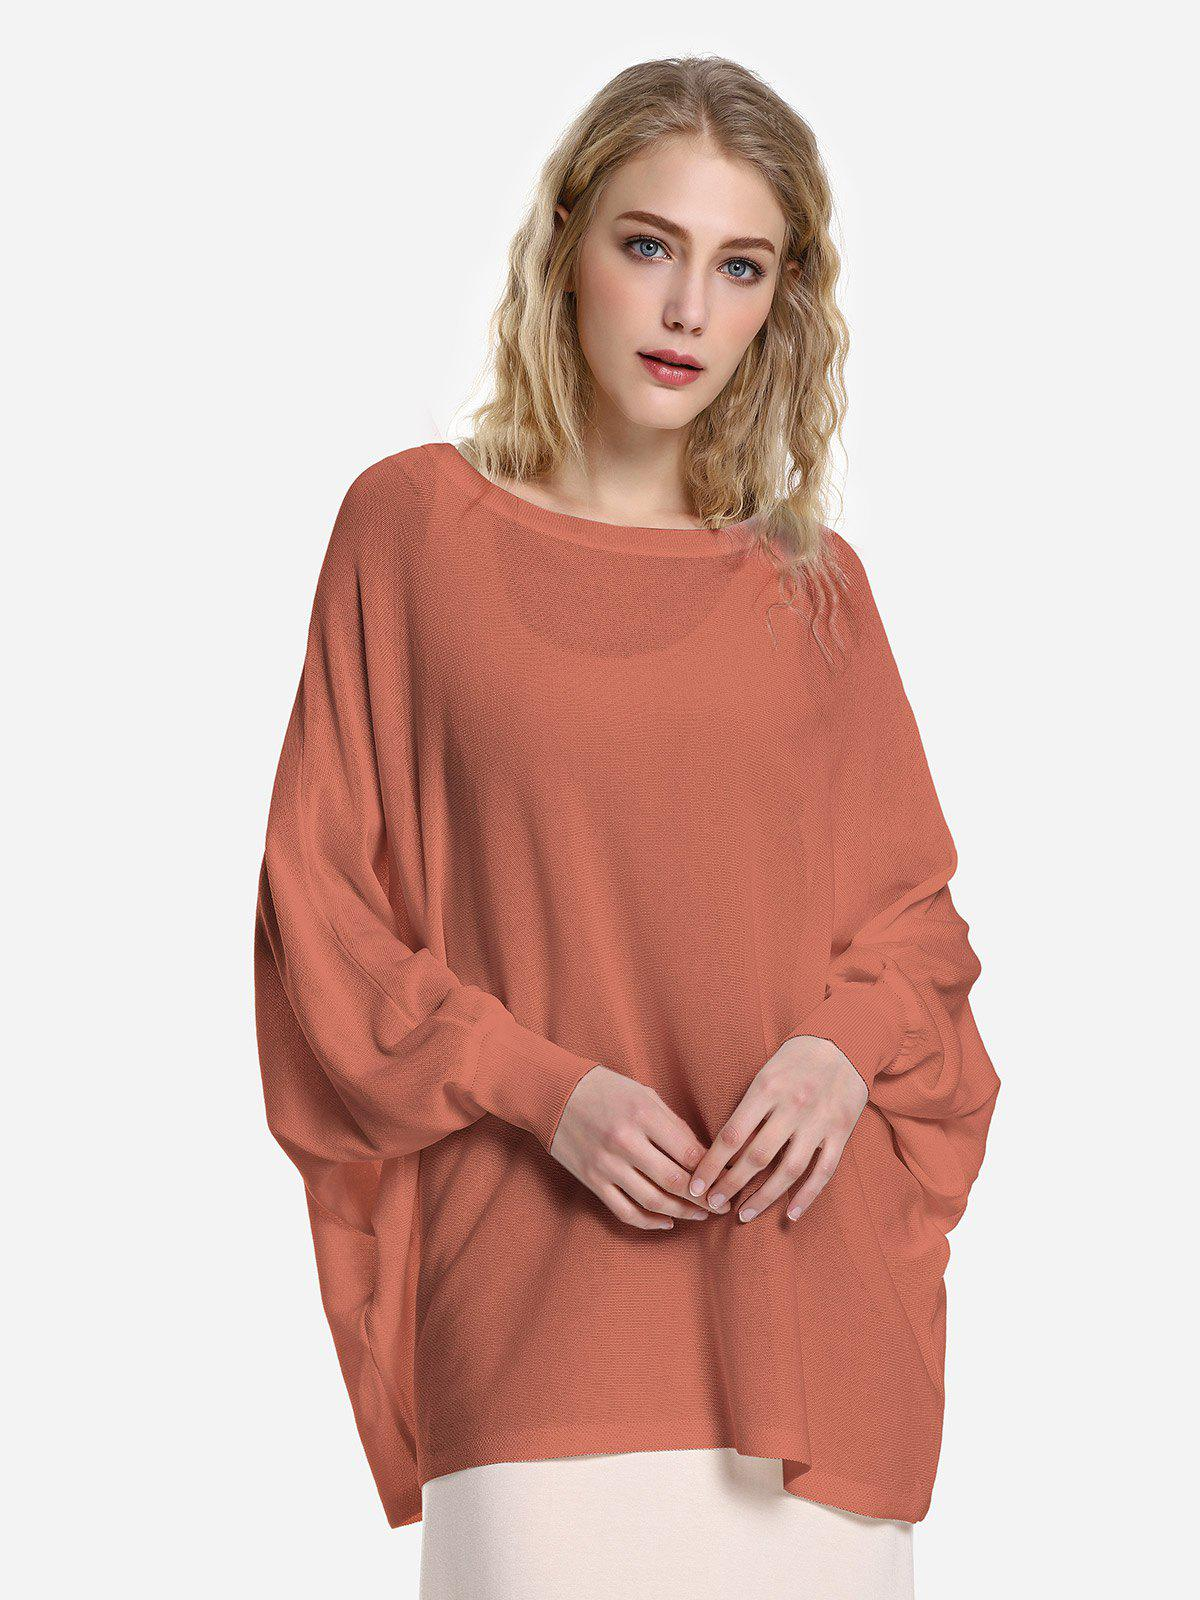 ZAN.STYLE Long Sleeve Round Neck Top - BRICK RED L